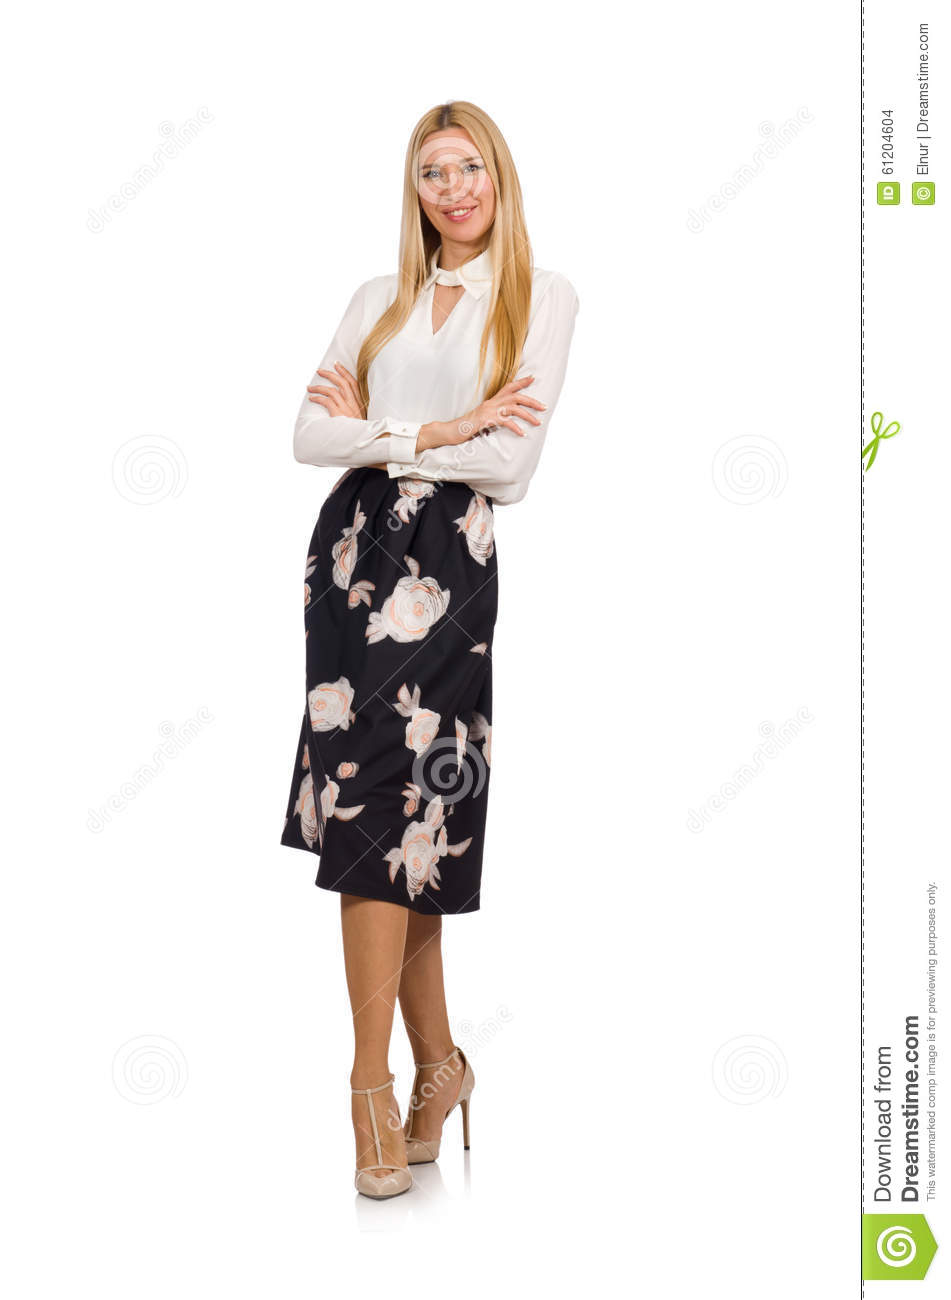 The Pretty Girl In Black Skirt With Flowers Stock Photo Image Of